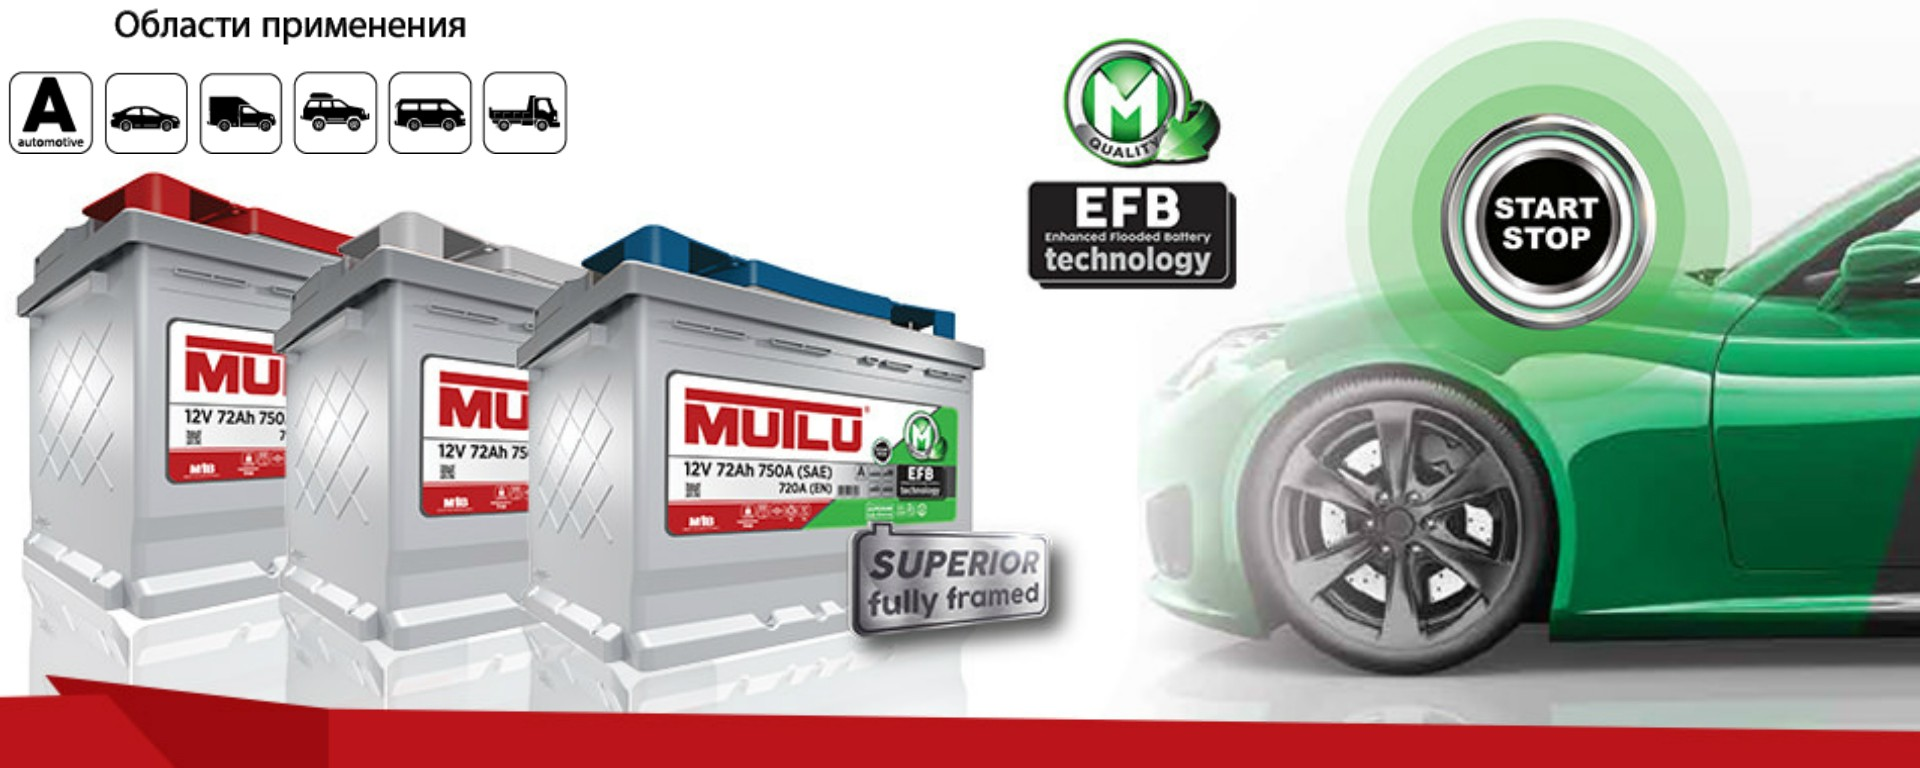 mutlu-efb-automotive.jpg